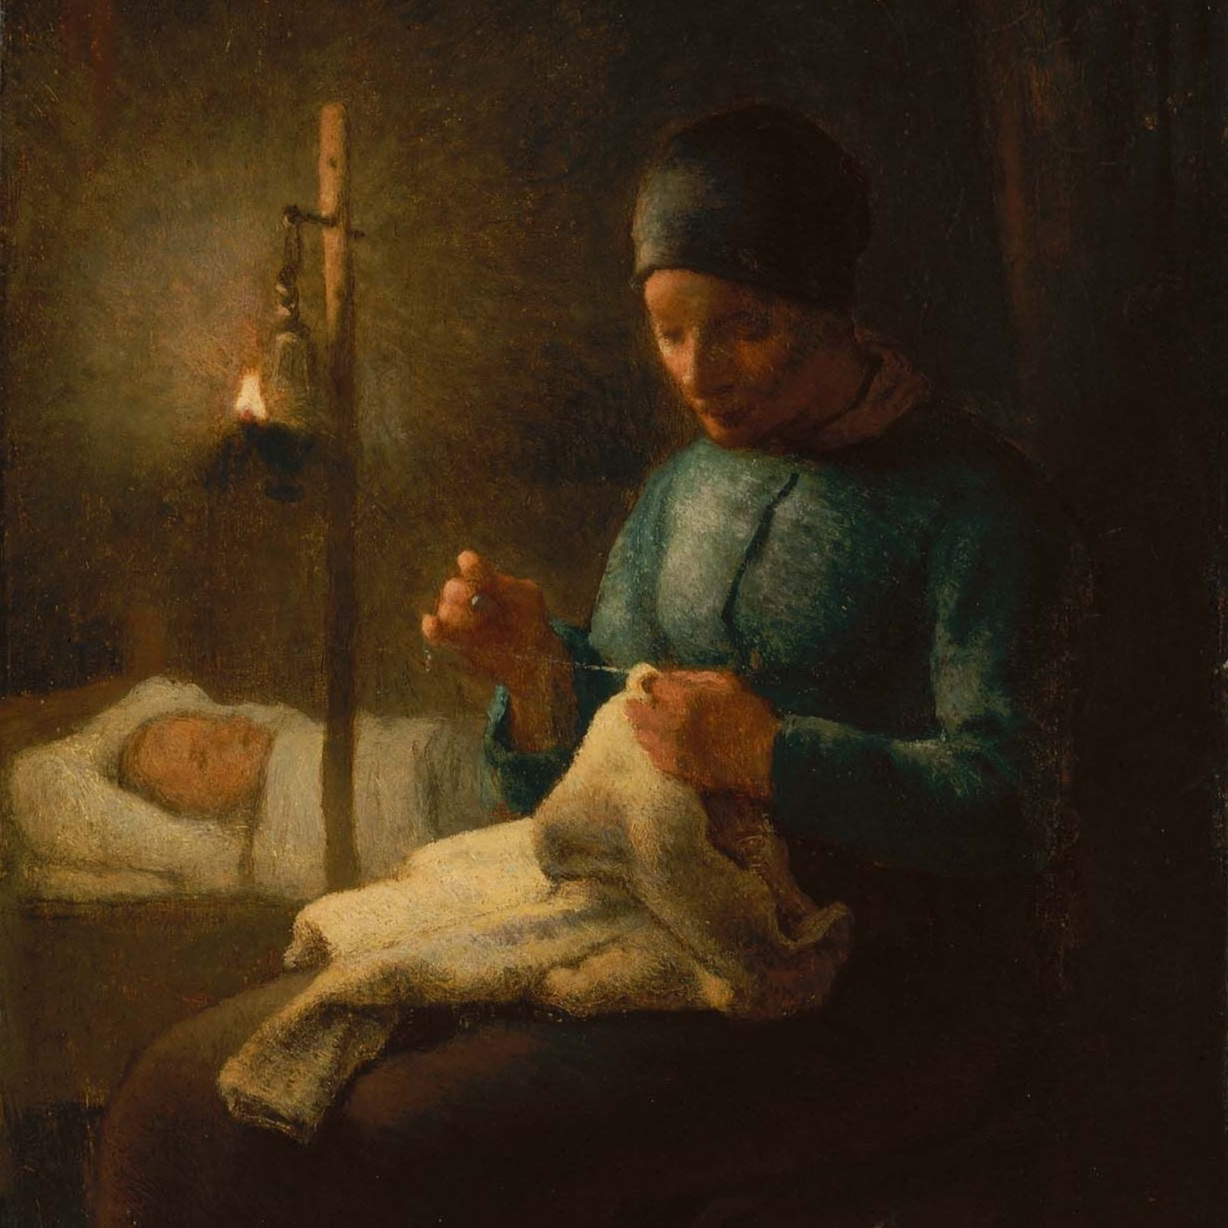 Image:    Woman Sewing Beside Her Sleeping Child by  Jean-François Millet